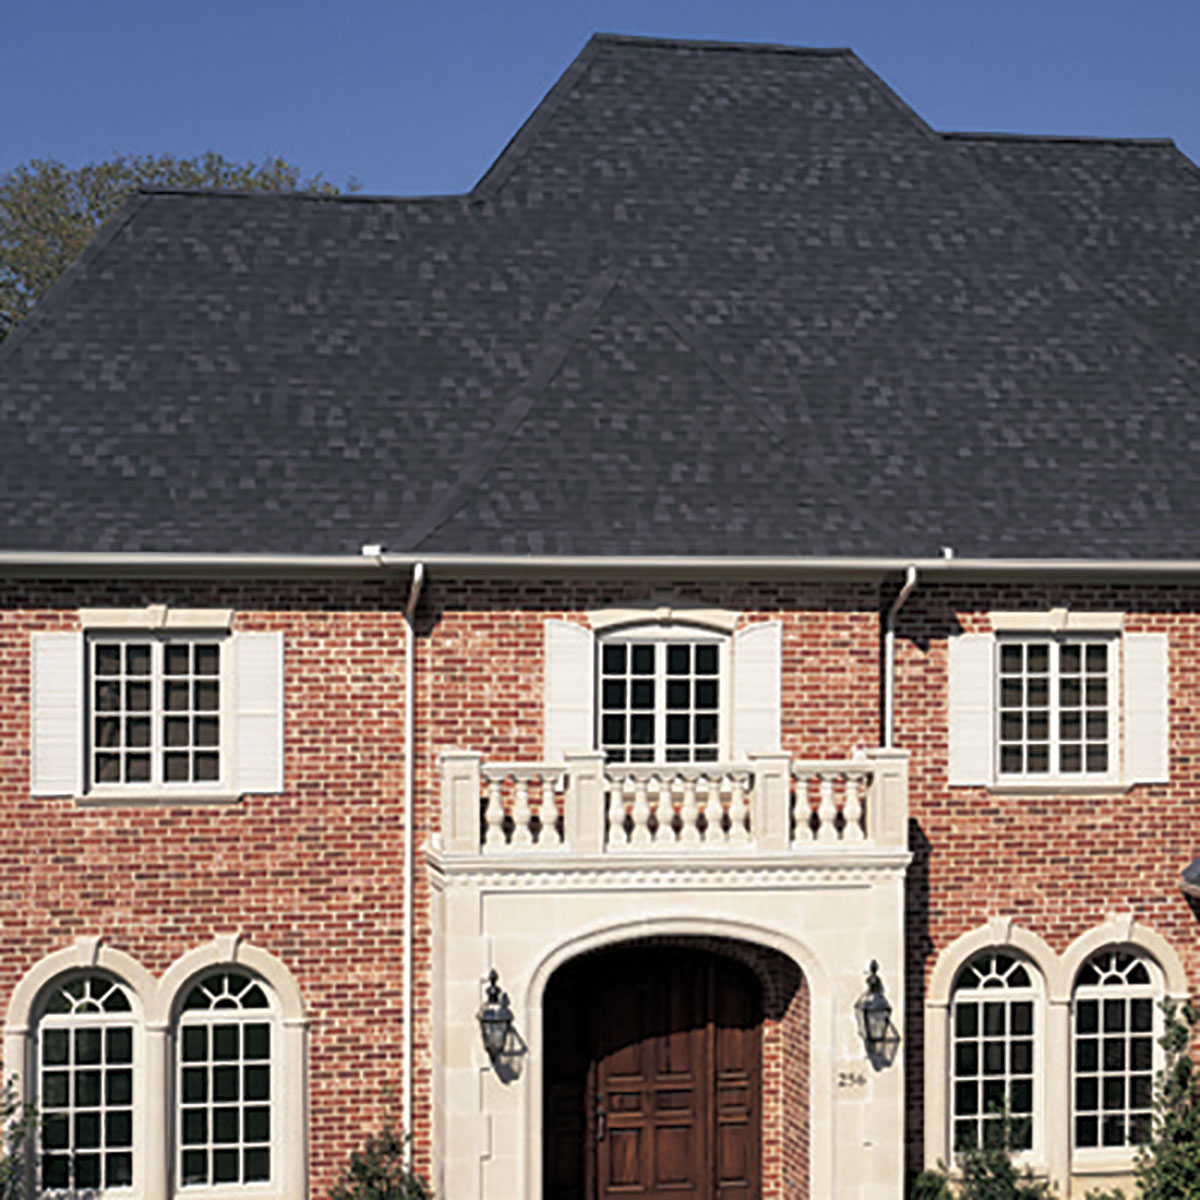 Beautiful Homes Start with Heritage Shingles: Roof Shake Shingles | Heritage Shingles | Cedar Shake Roof Cost